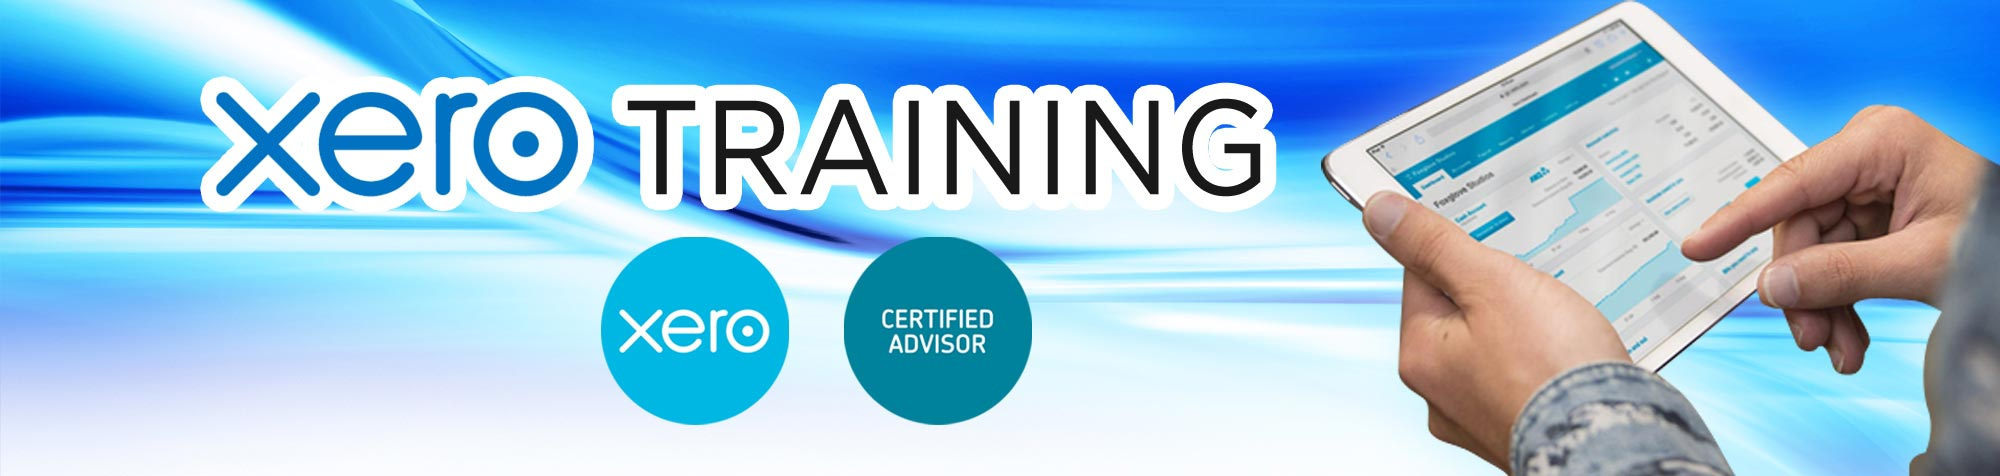 Xero Training: National Importance of Online Learning